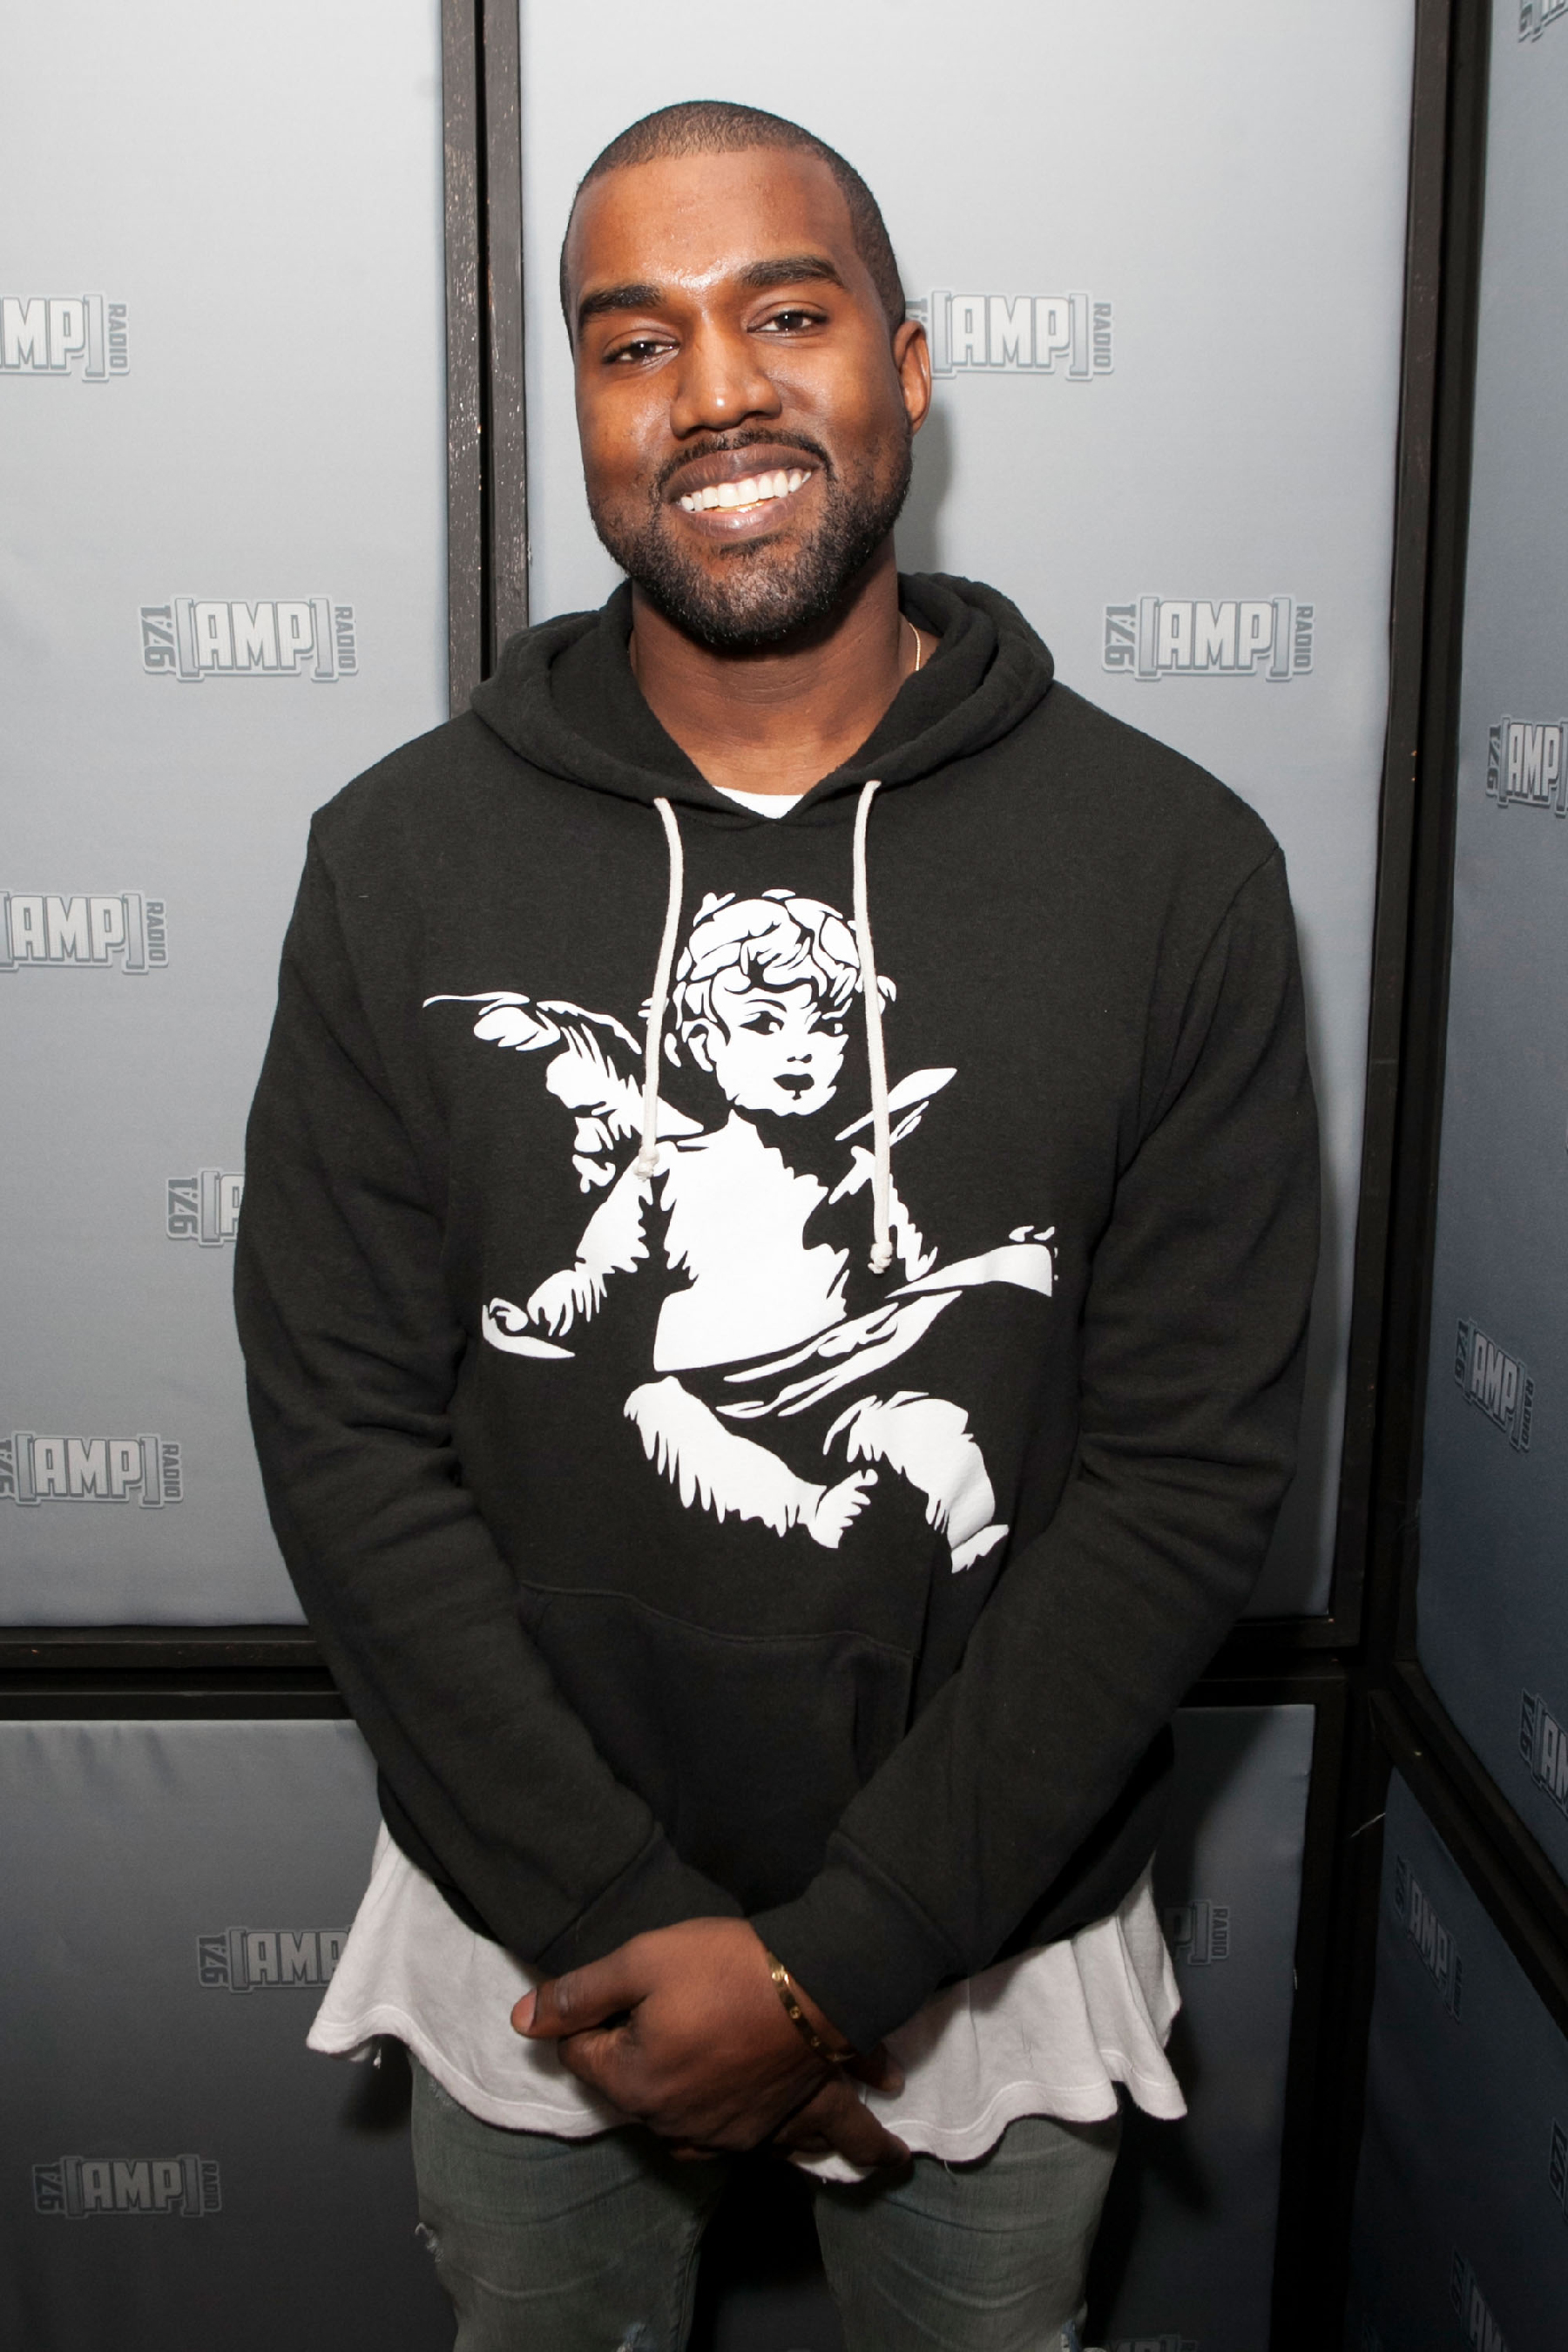 Kanye West on the Taylor Swift Incident, Tupac, the Grammys and More